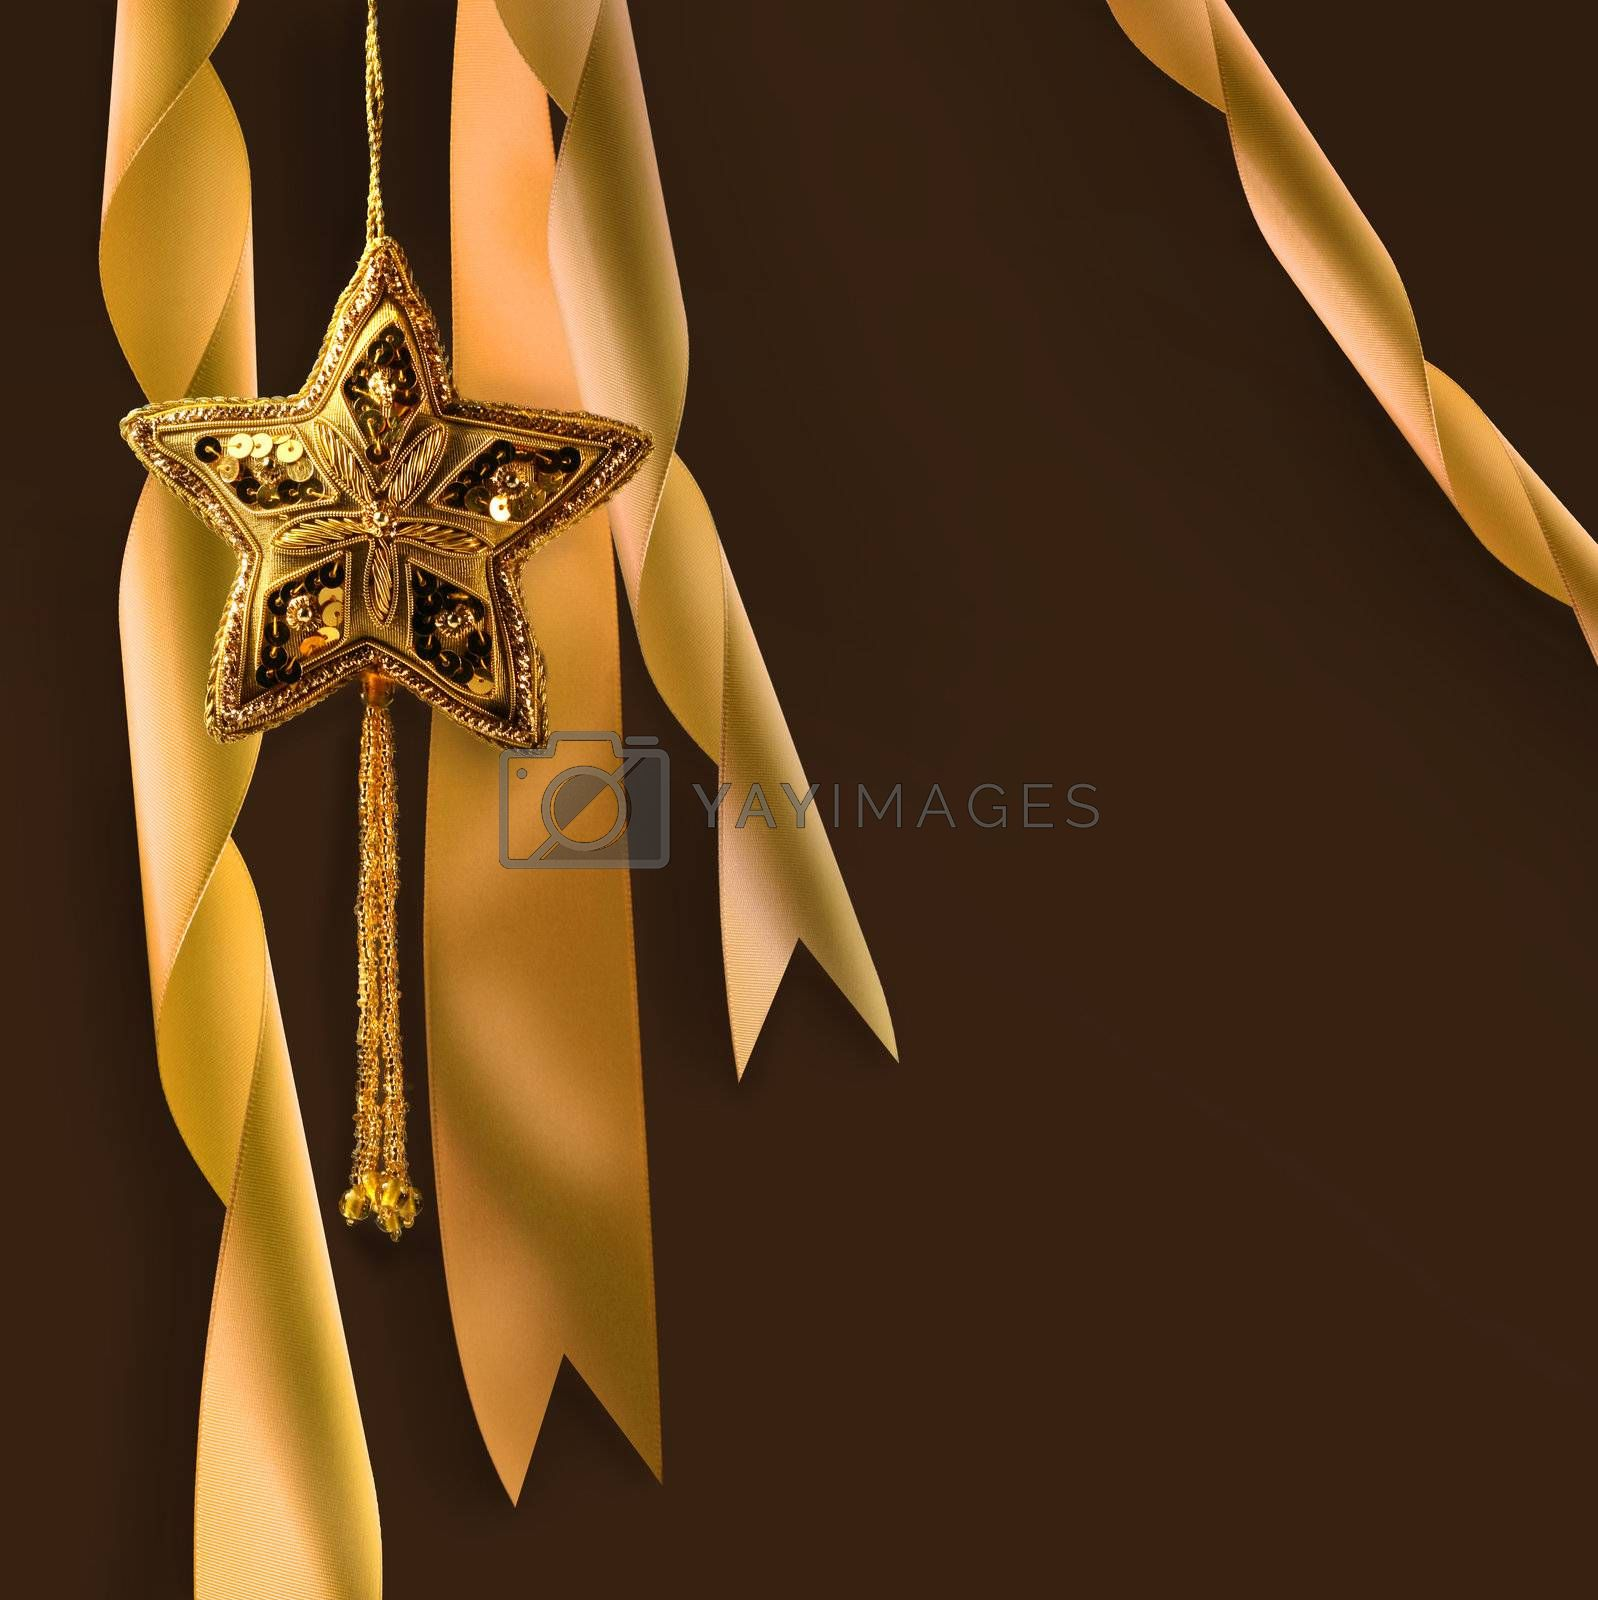 Gold christmas star with ribbons against dark background